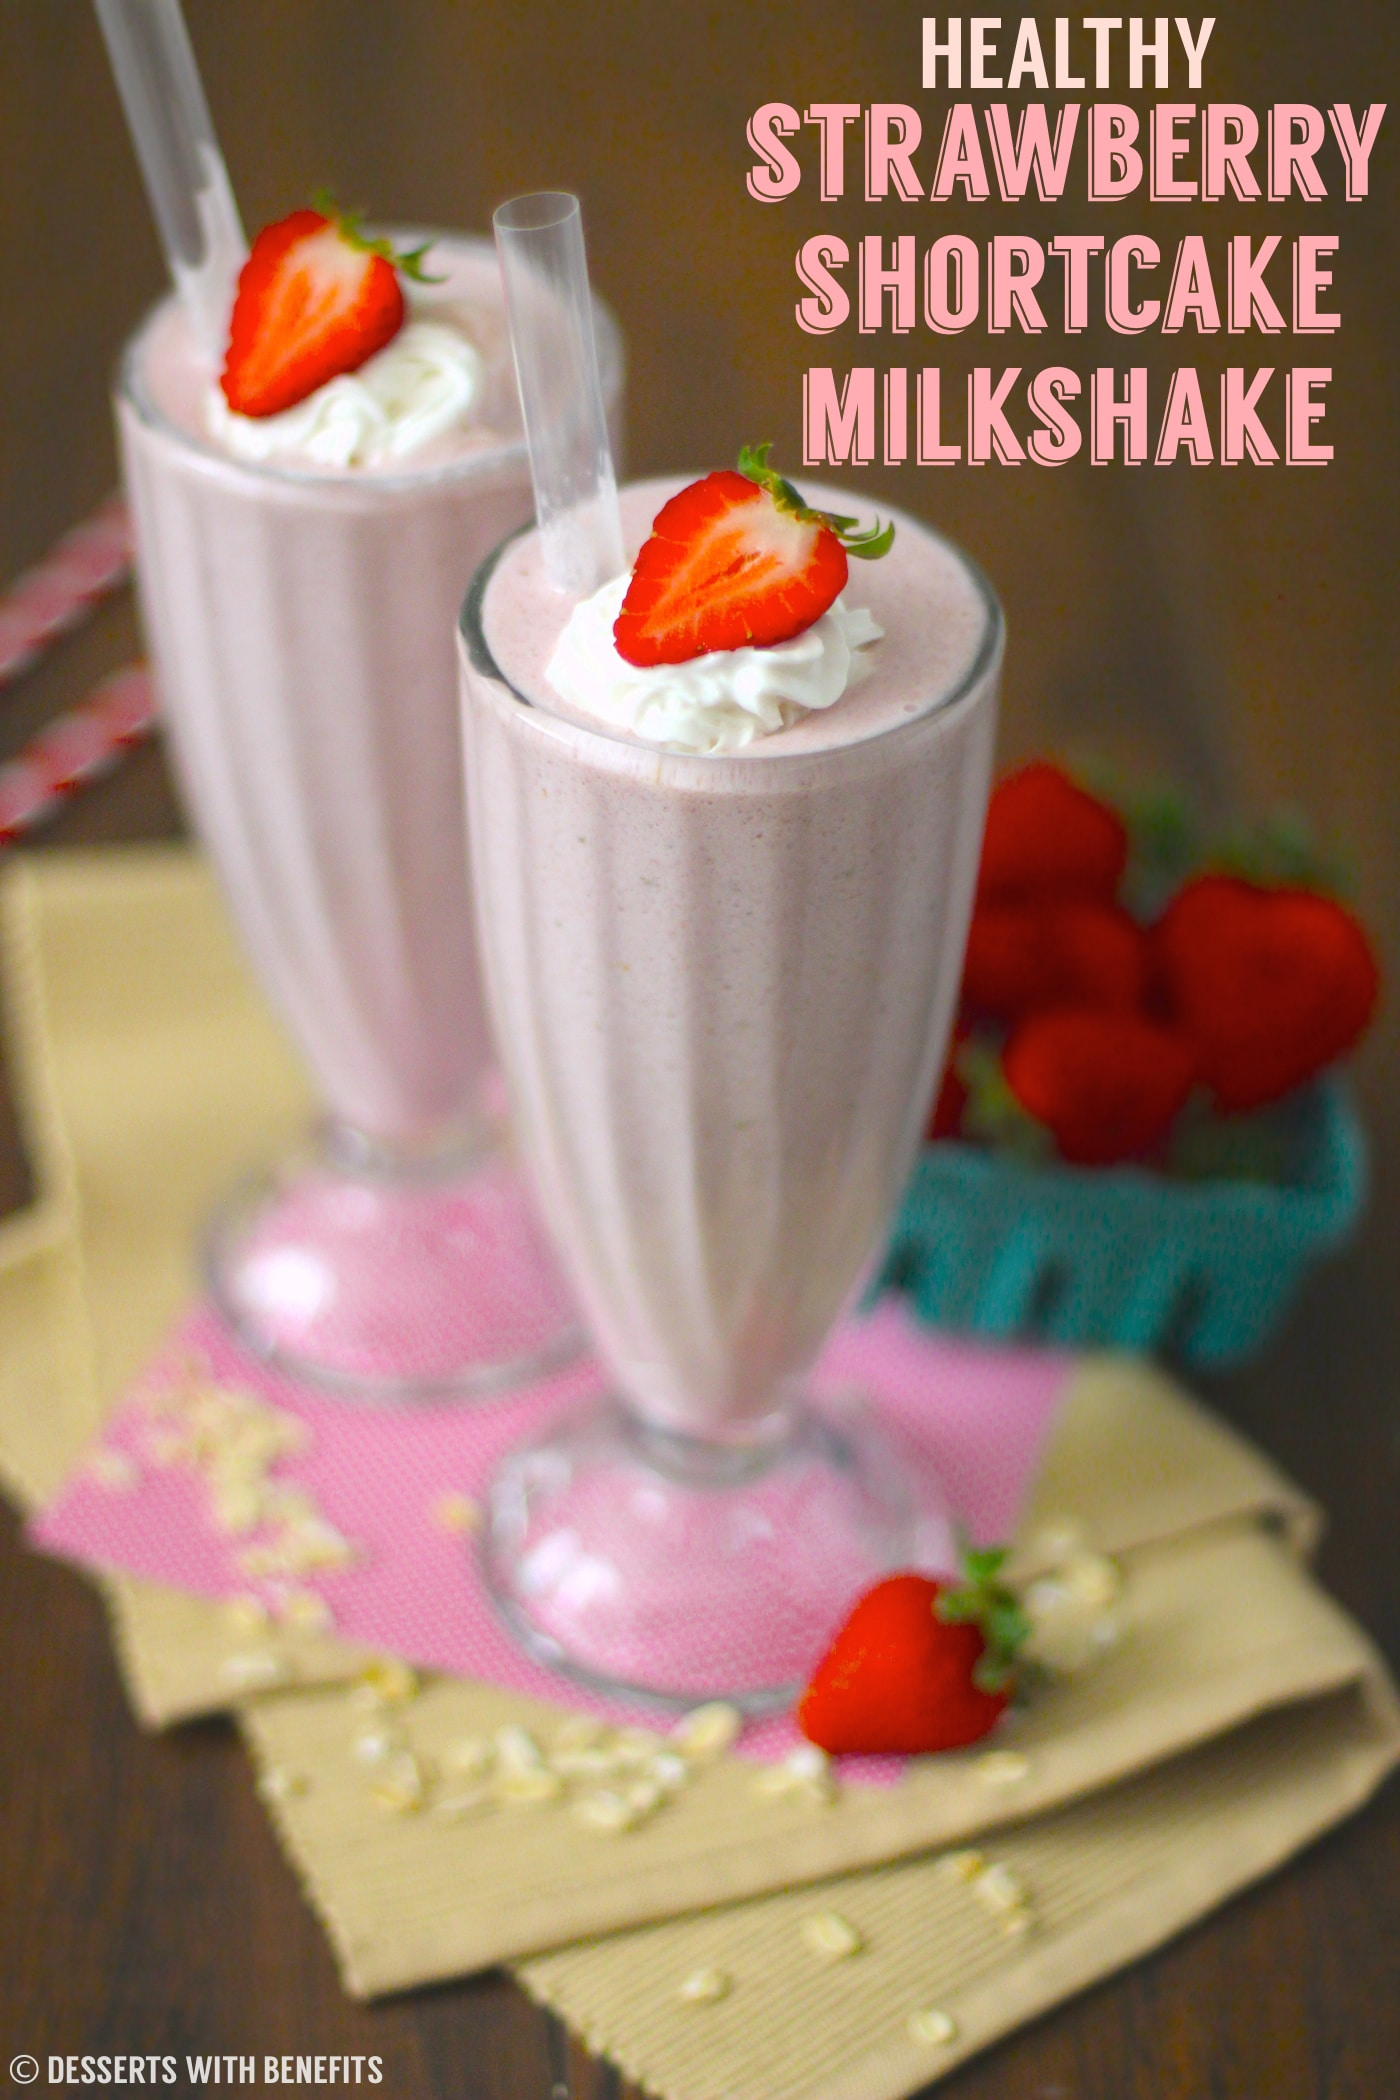 This Healthy Strawberry Shortcake Milkshake is so sweet and creamy, you'd never know it's refined sugar free, low fat, low calorie, and high protein!